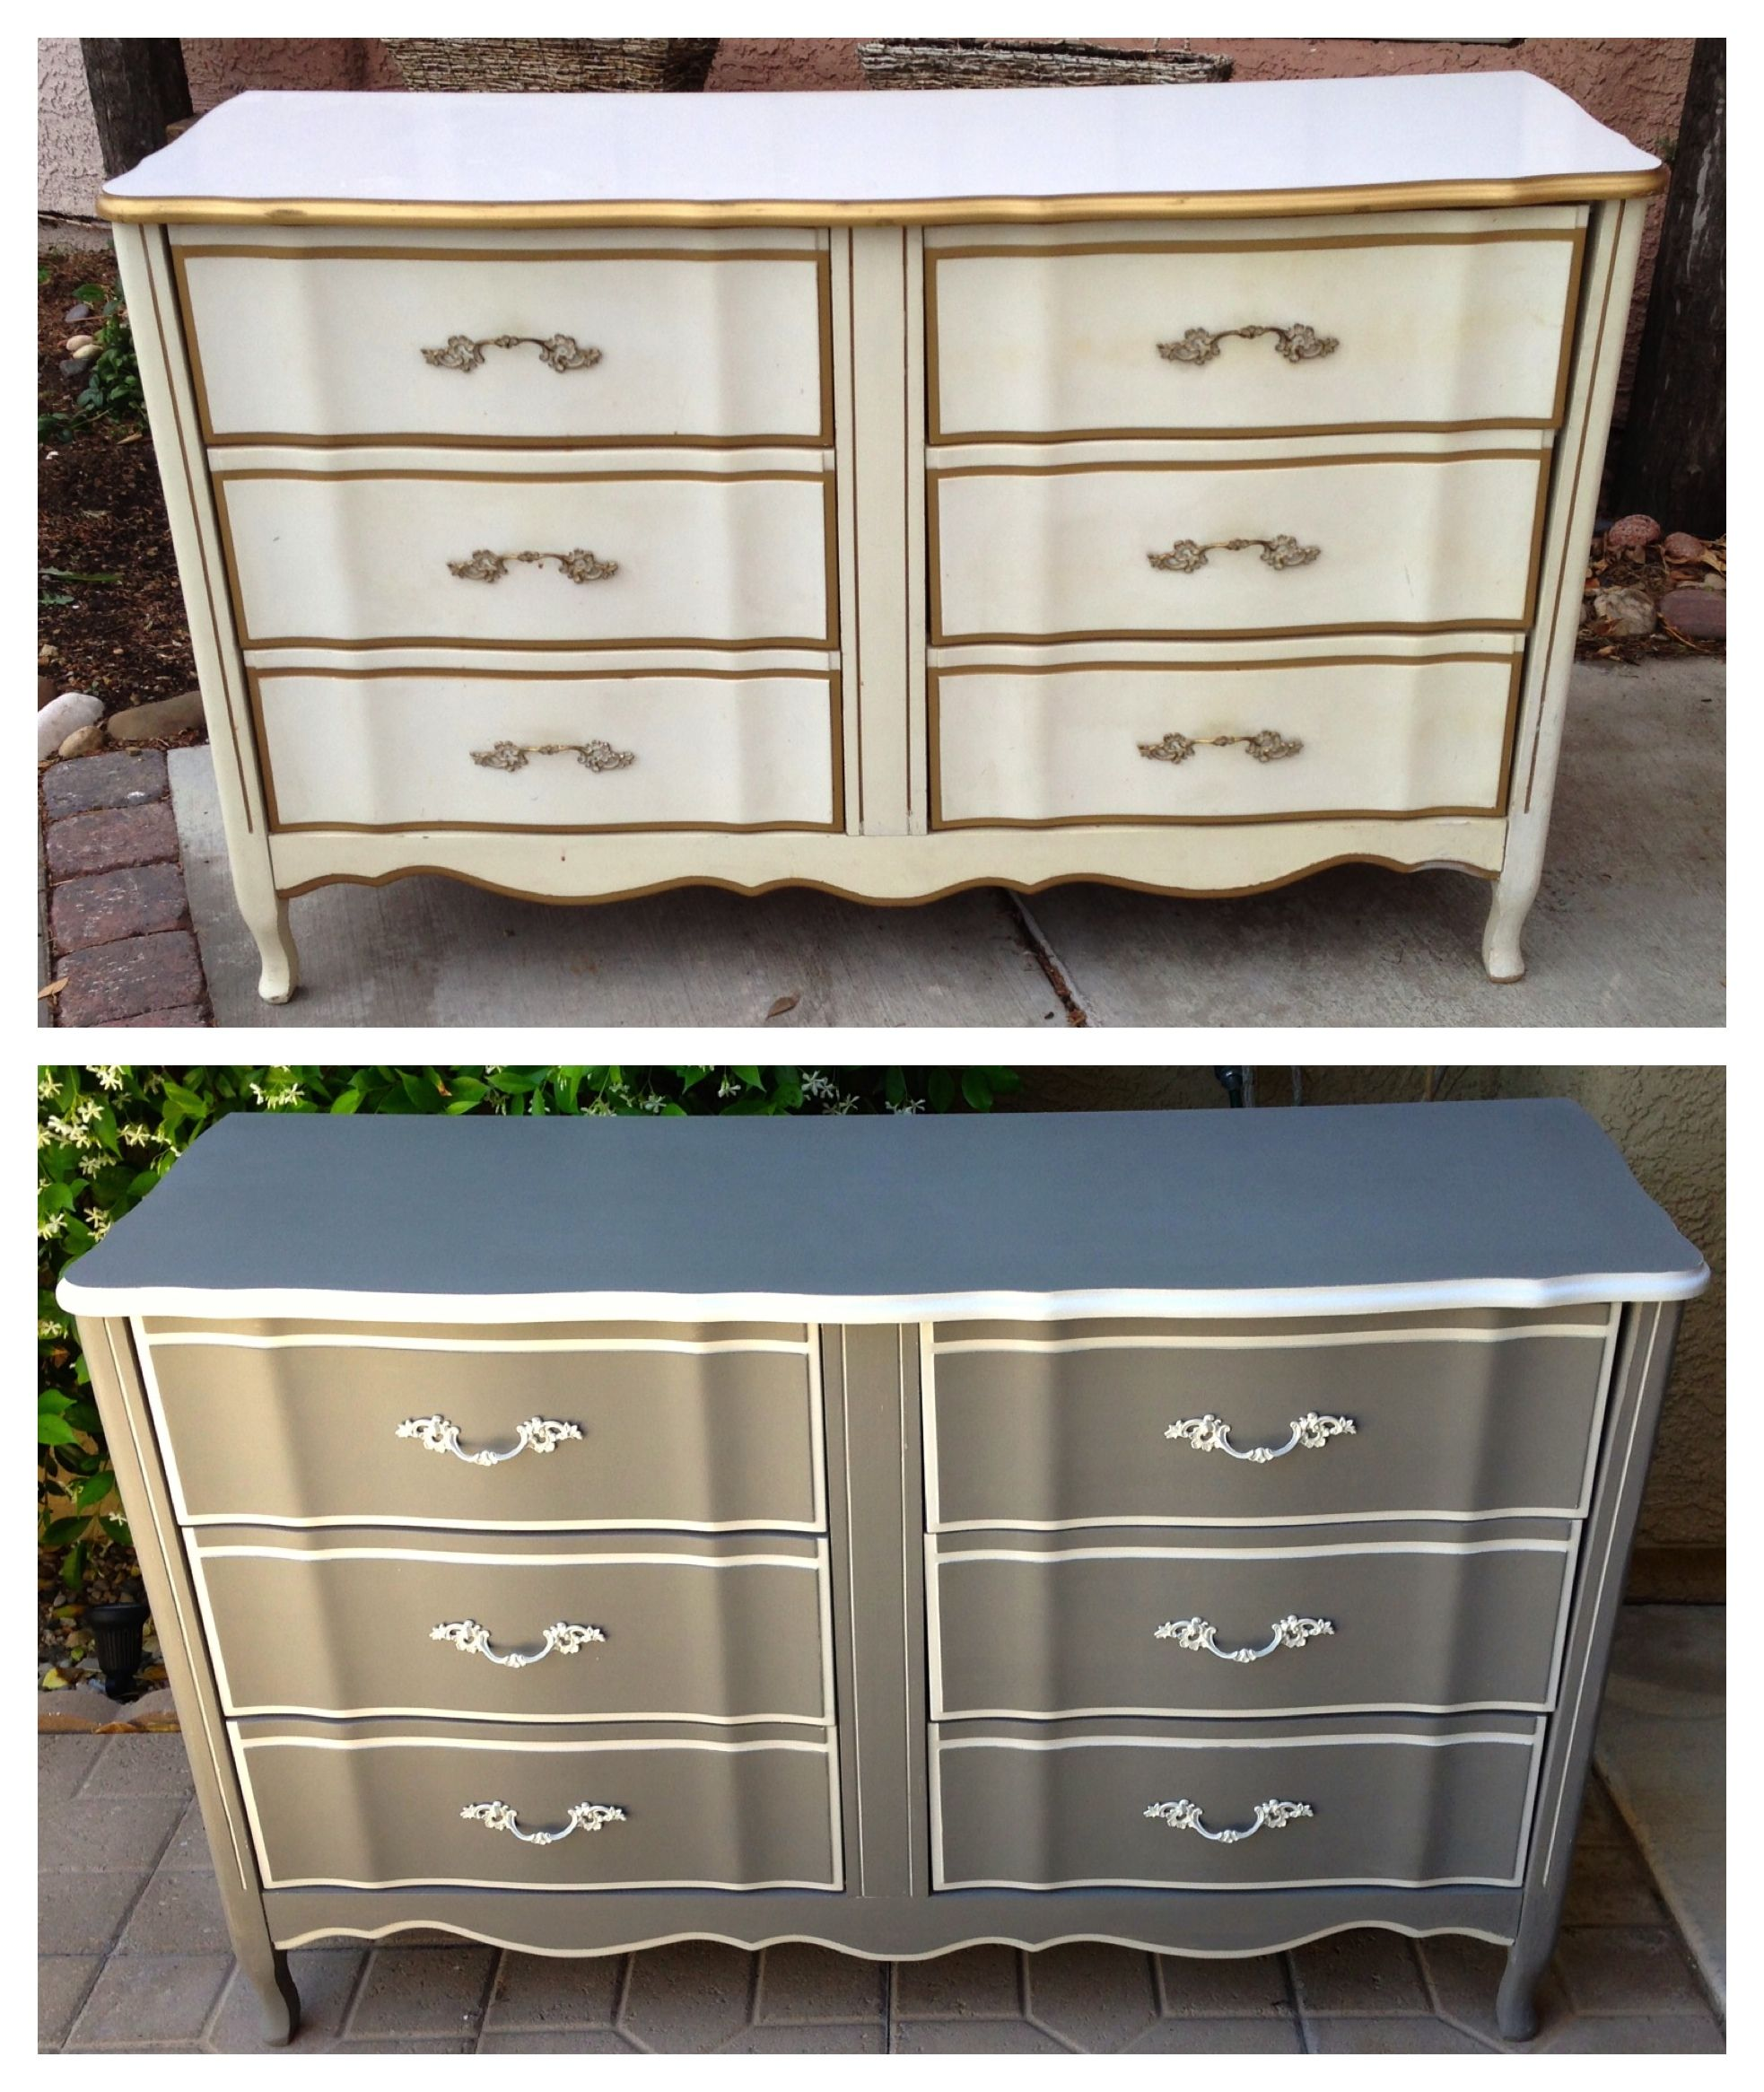 Amazing Furniture Makeover · Www.facebook.com/... Vintage, Shabby, Refinished,  Painted